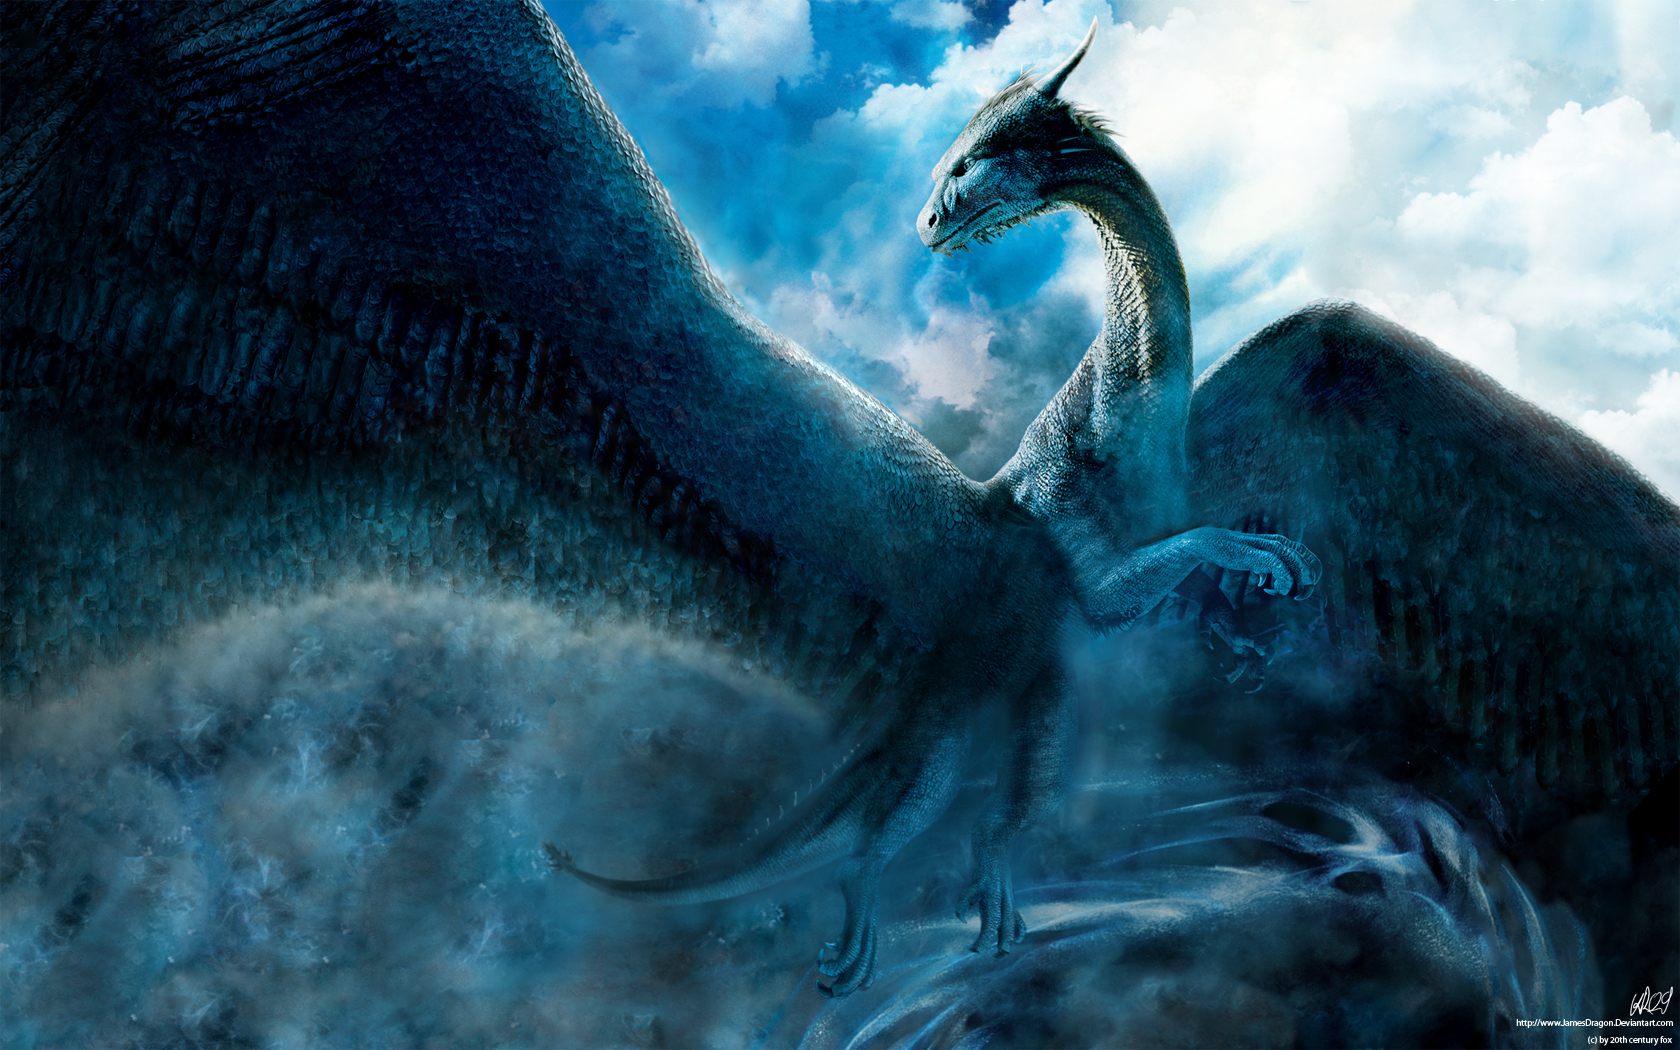 http://dreager1.files.wordpress.com/2010/06/saphira_reloaded_by_jamesdragon.jpg